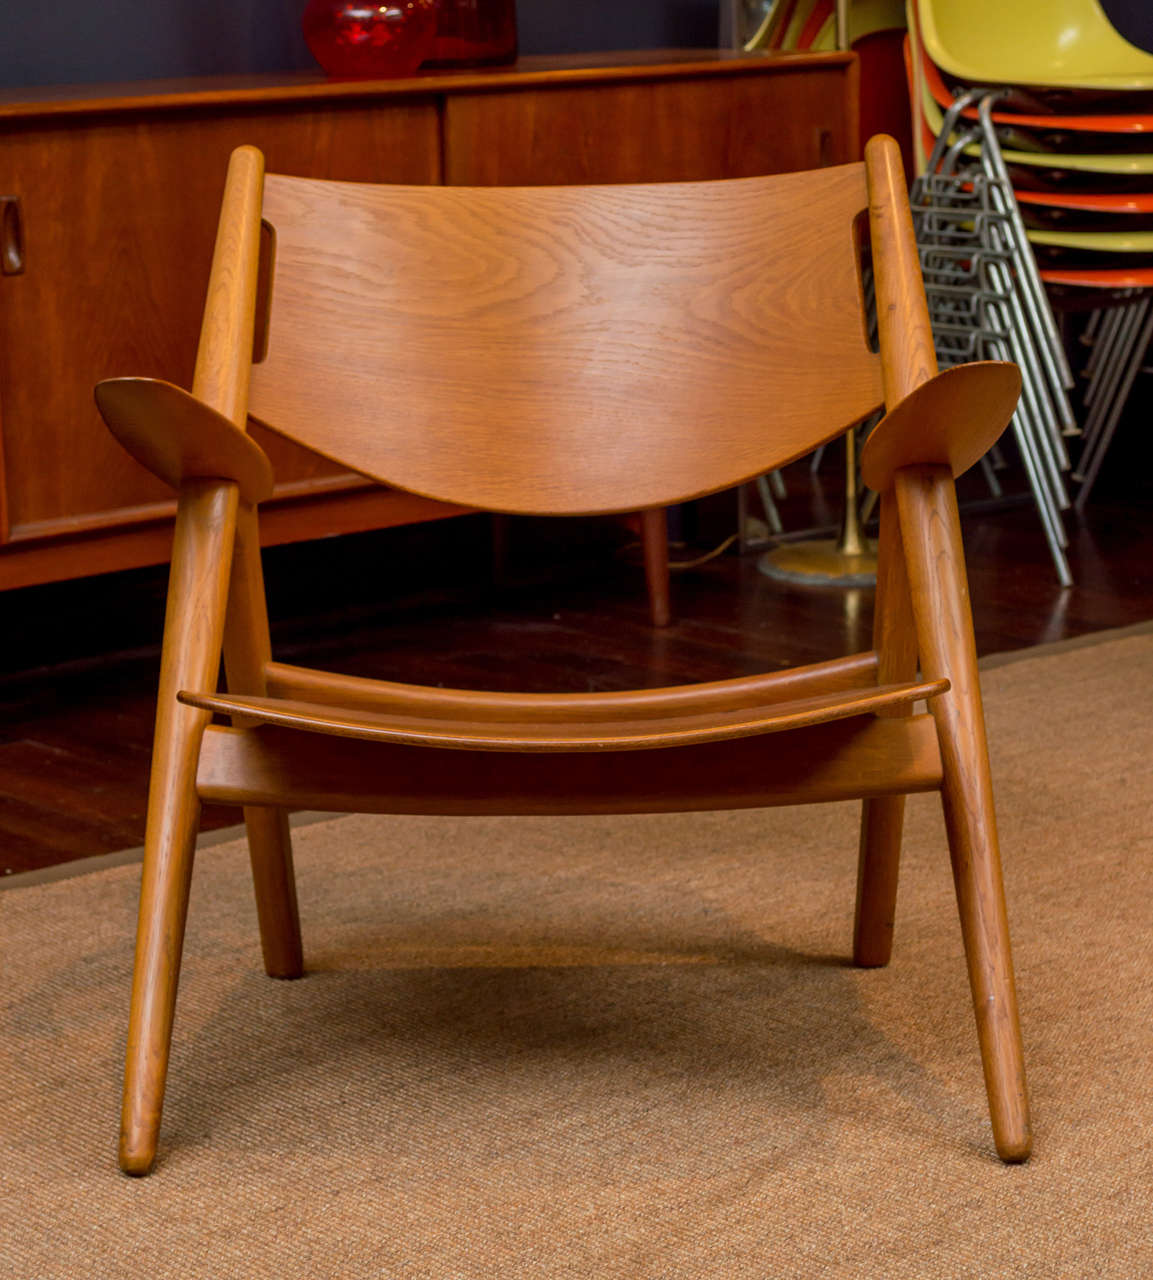 Sculptural and comfortable teak and oak lounge chair designed by Hans J Wegner for Carl Hansen & Son.  Branded mark, in excellent original condition.